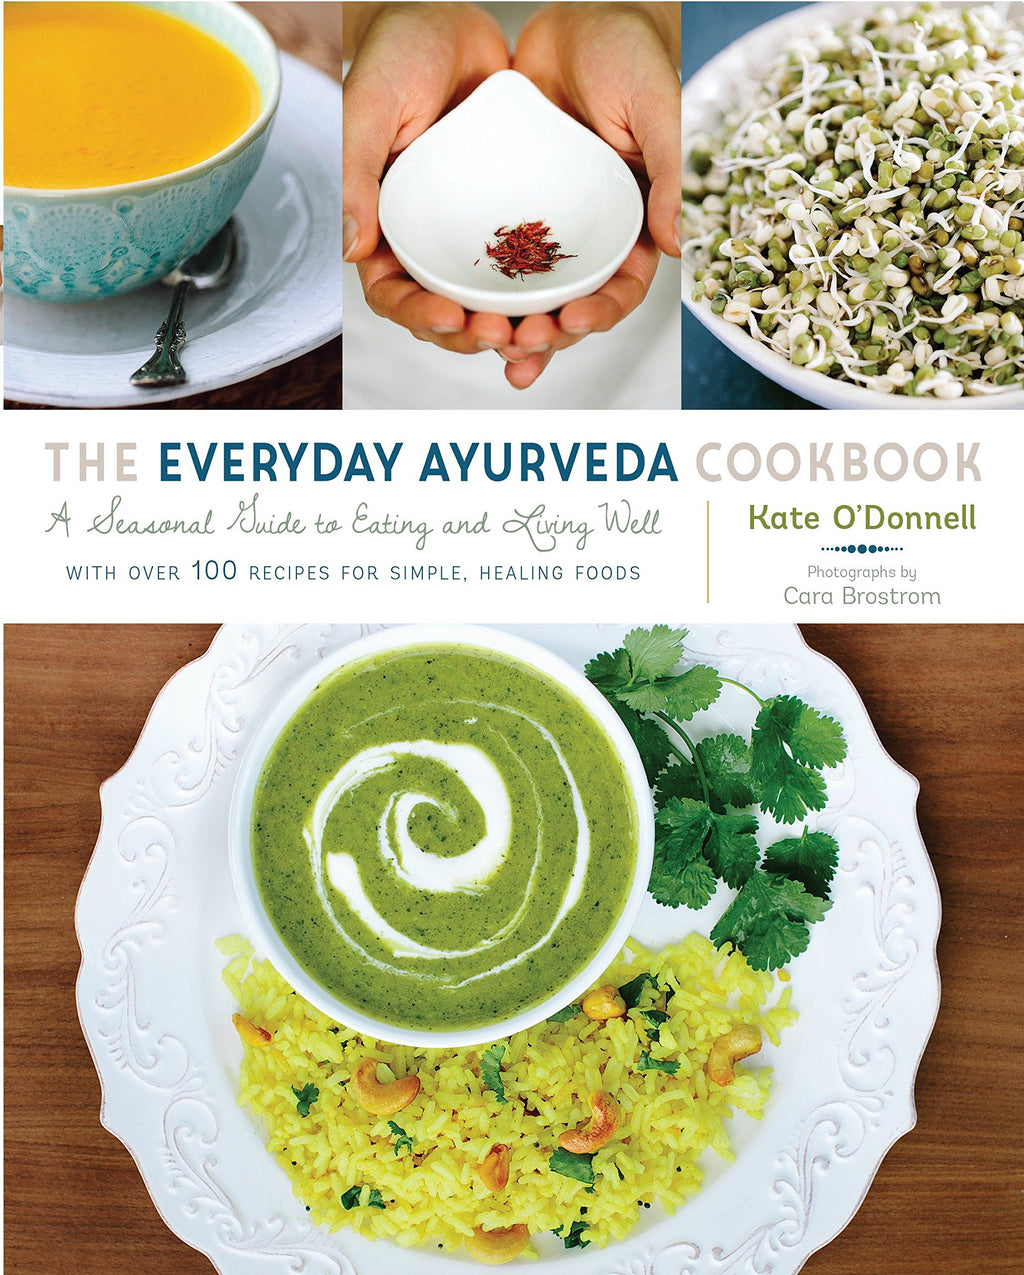 Everyday Ayurveda Cookbook by Kate O'Donnell